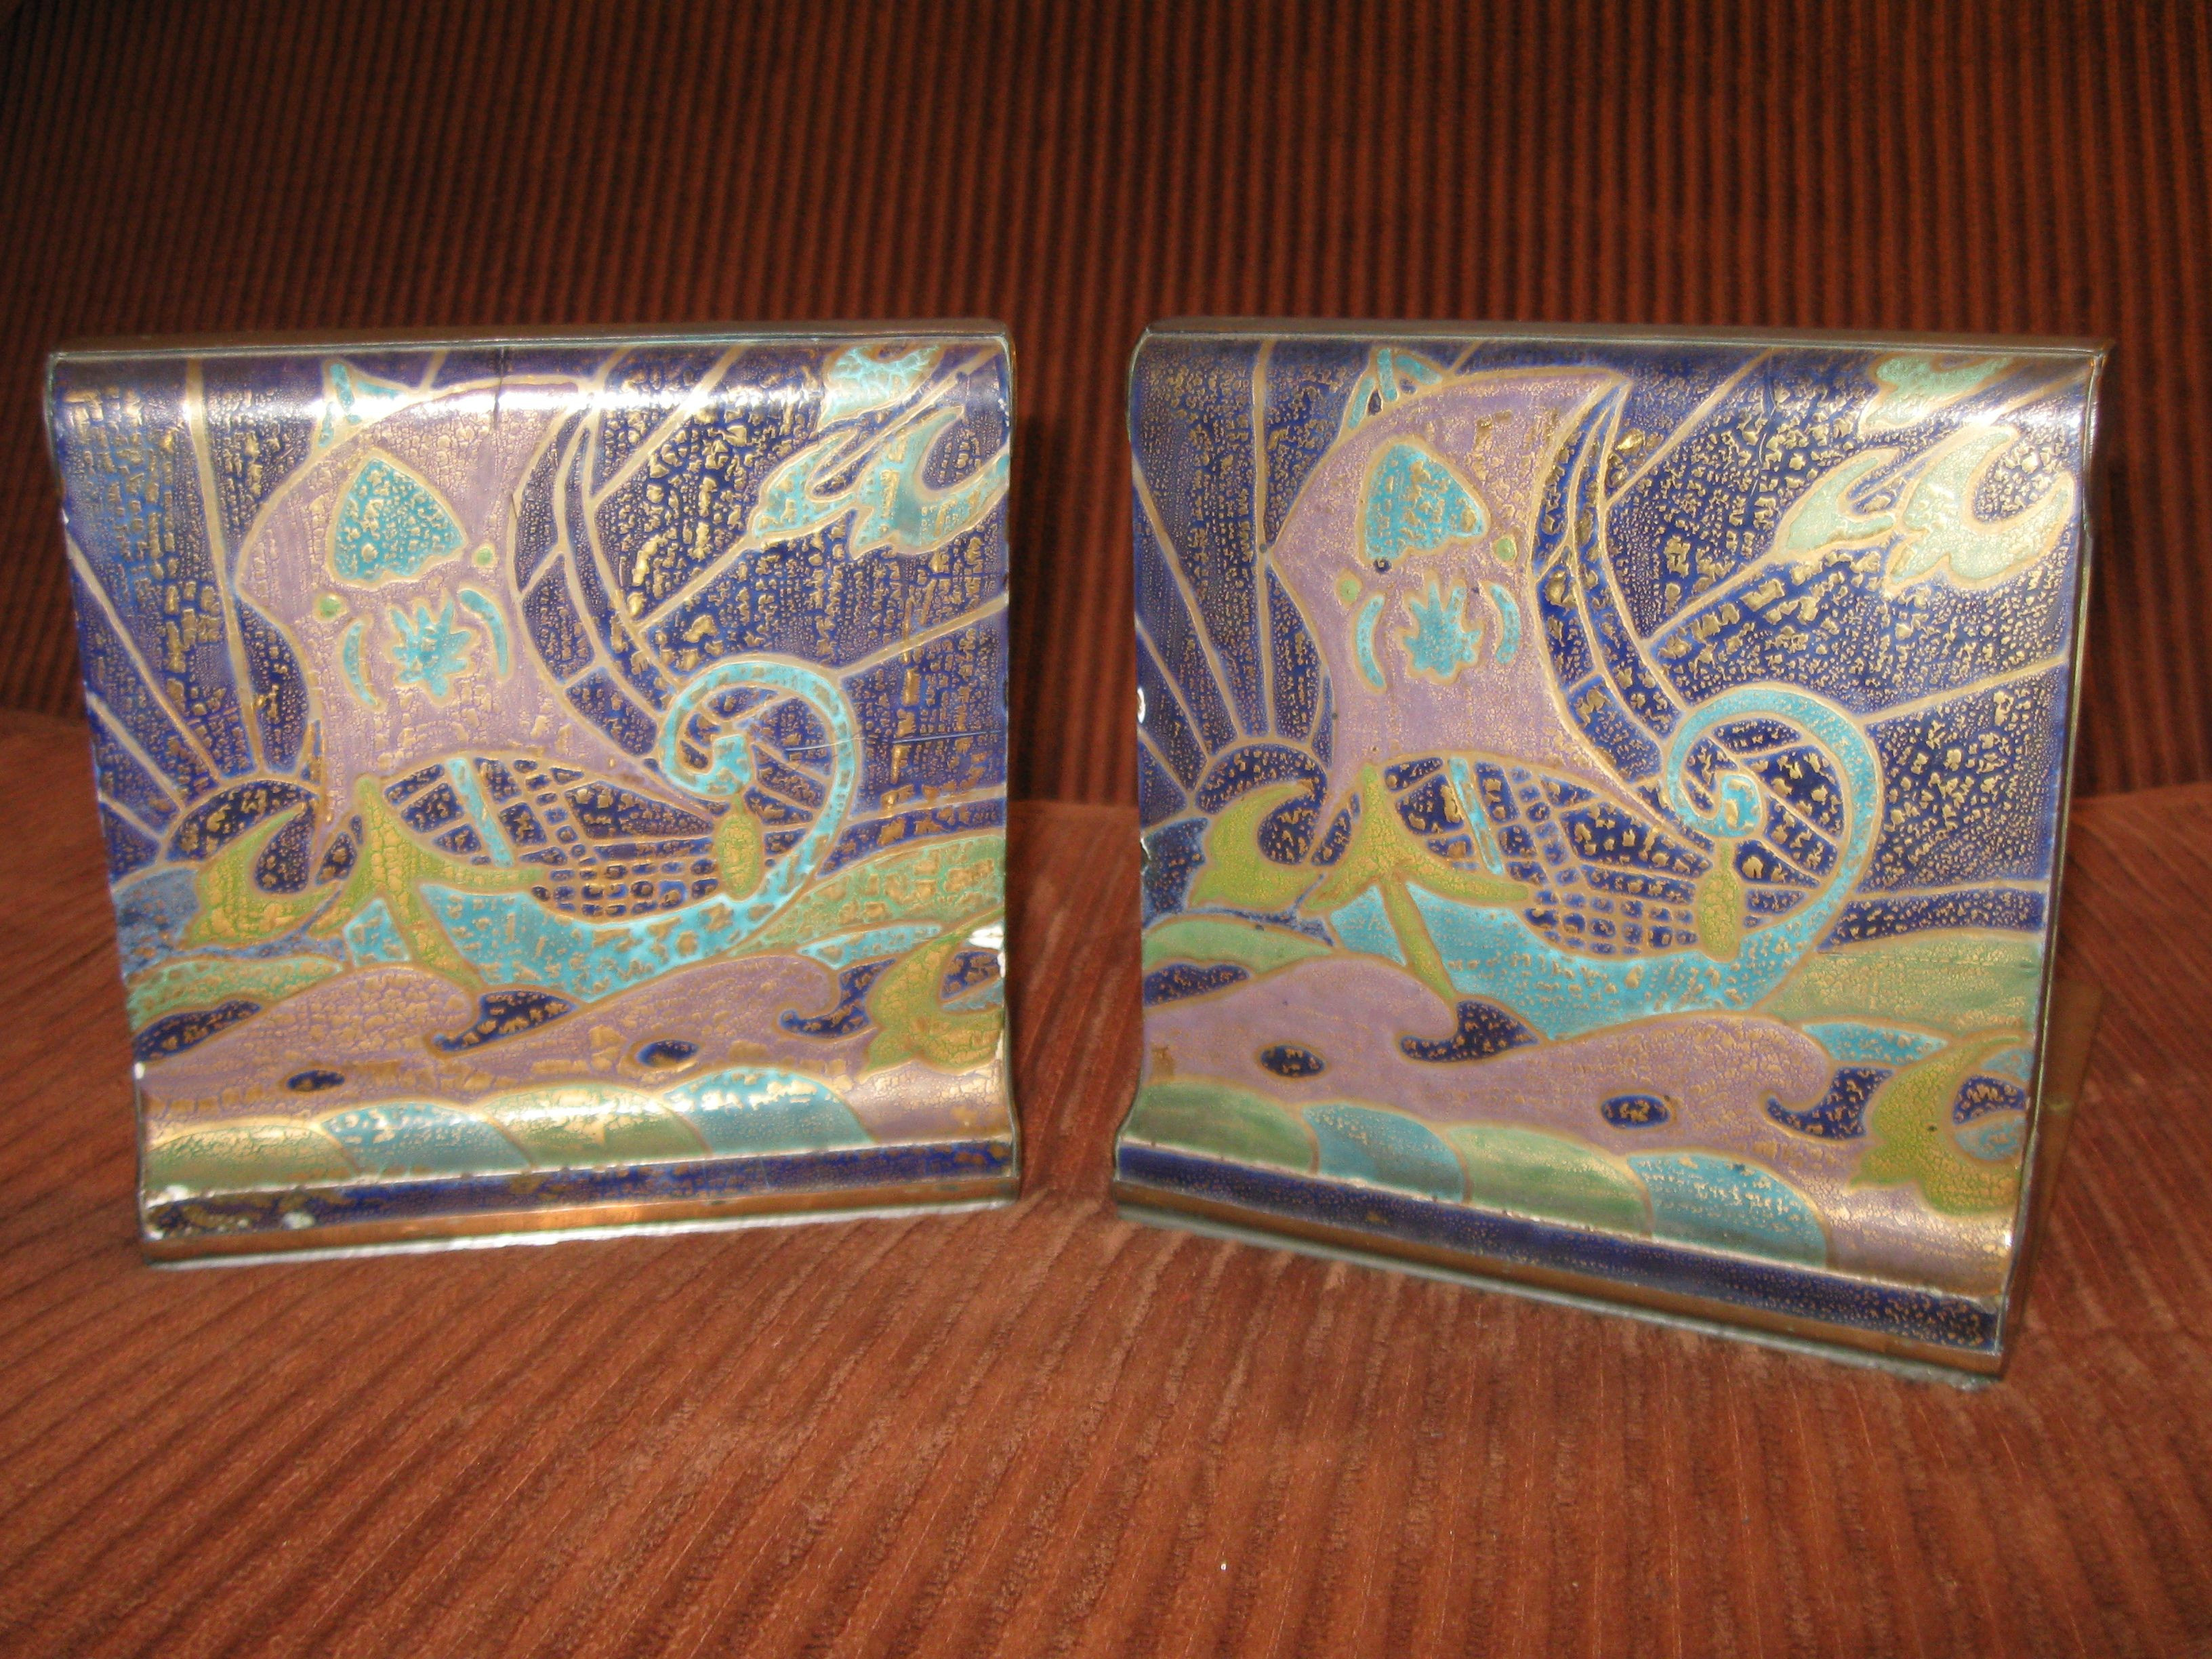 van briggle vase antiques roadshow of dirk van erp tile bookends circa 1920 arts and crafts style pertaining to dirk van erp tile bookends circa 1920